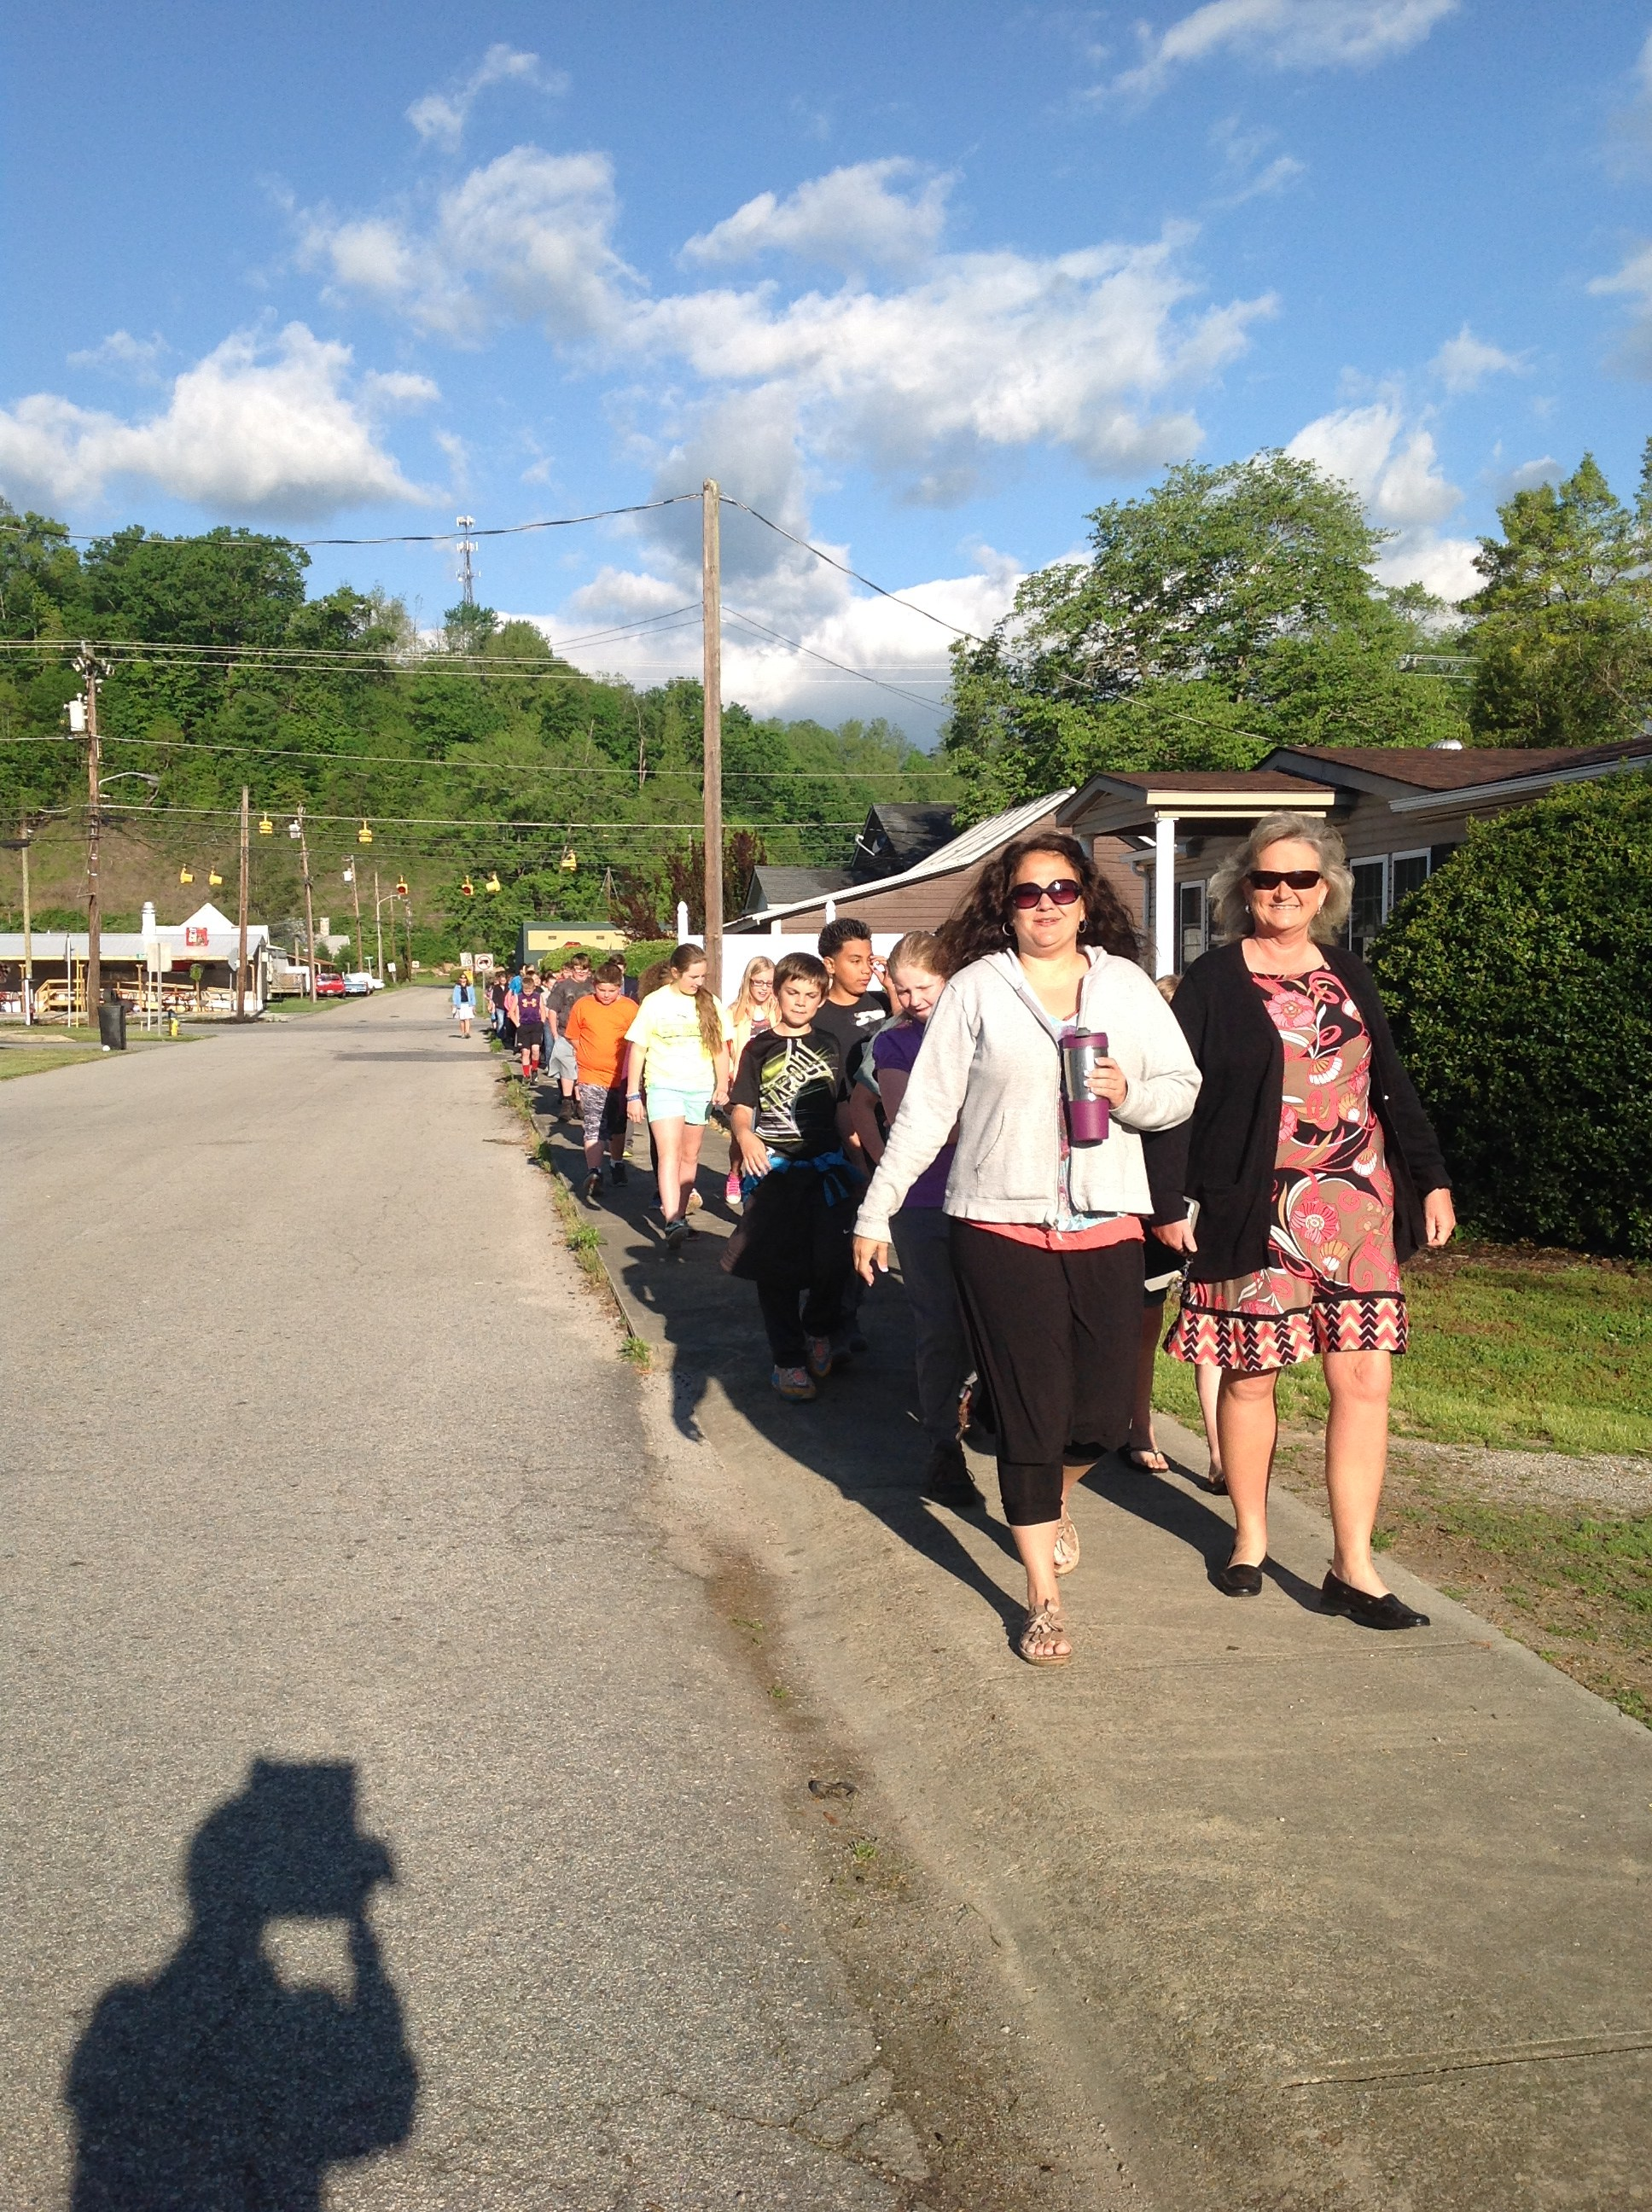 Mrs. Dyer and her students walking down the road.